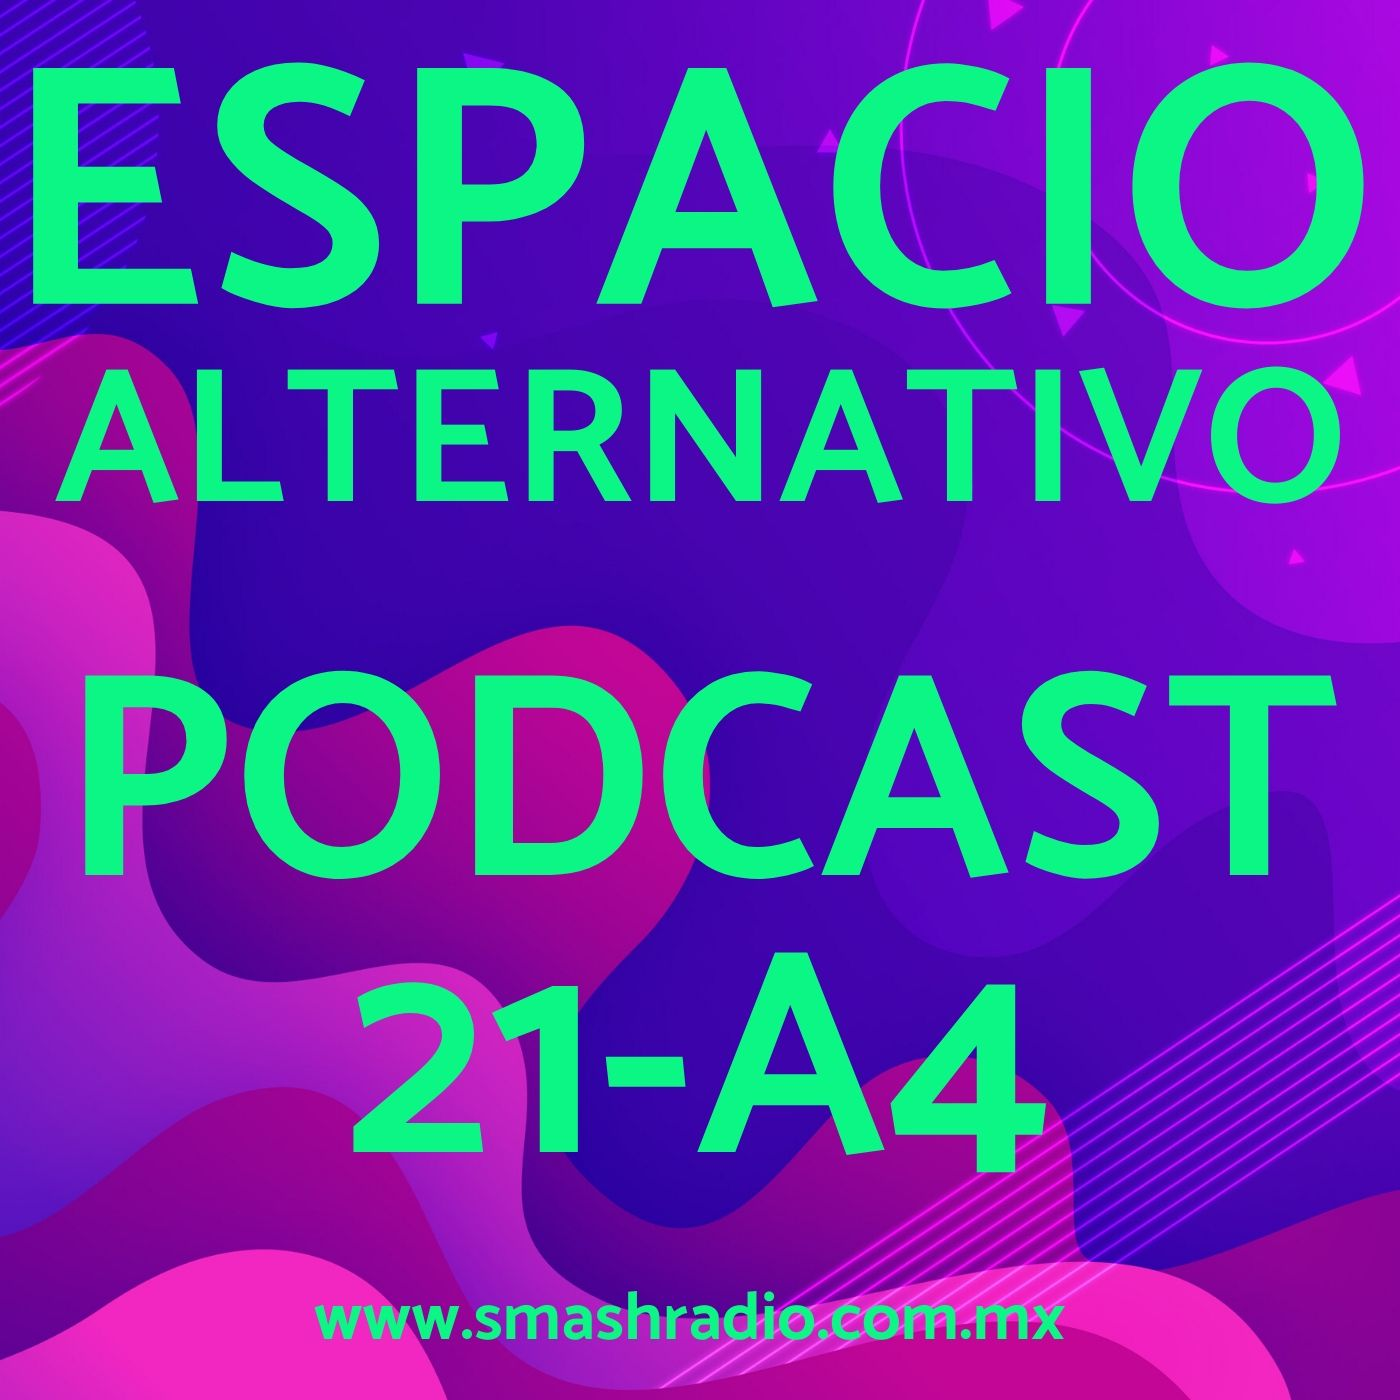 Espacio_Alternativo_Podcast_21-a4